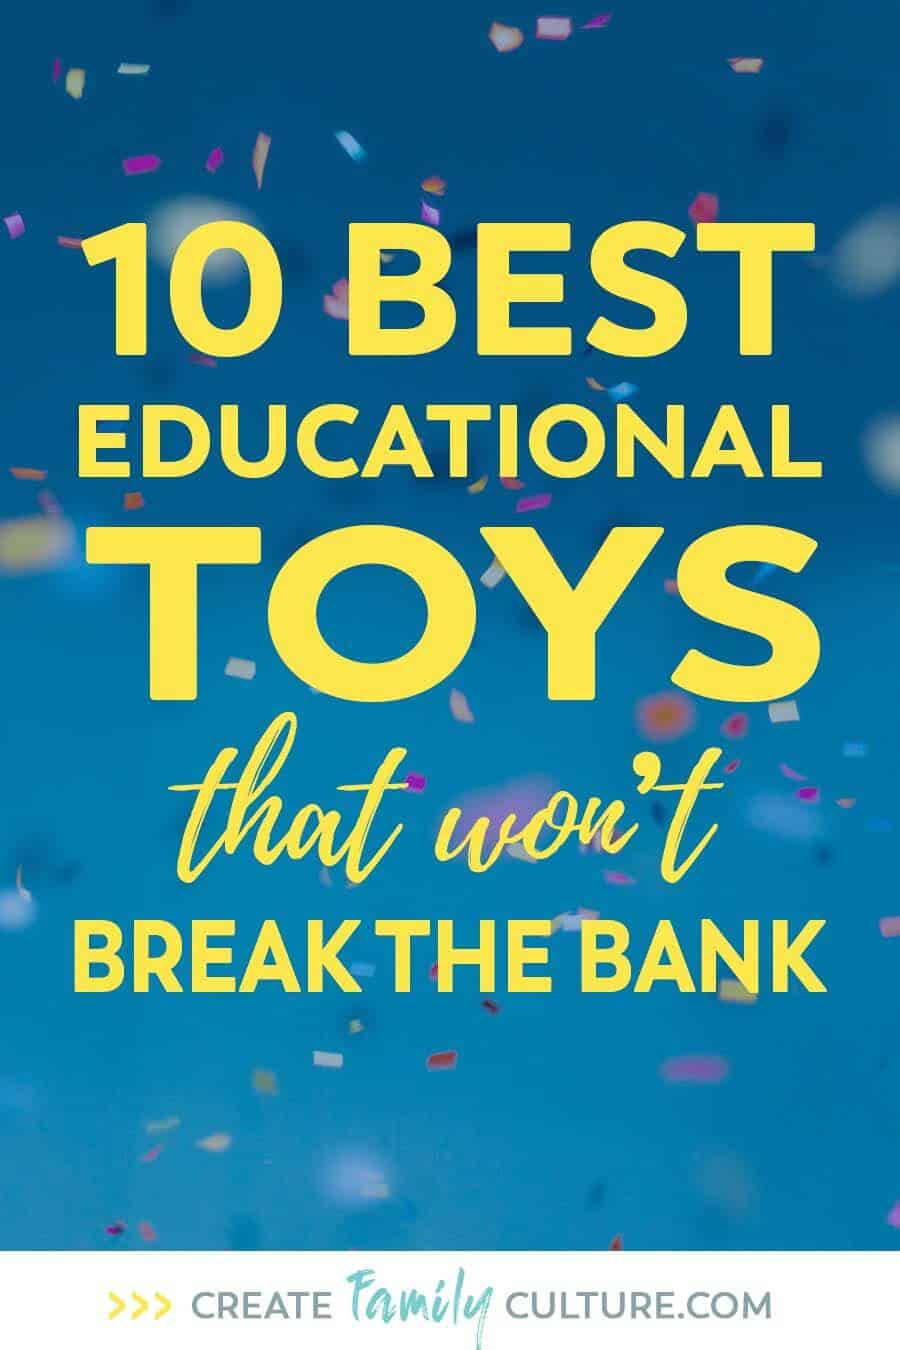 10 Best education toys that are inexpensive, budget-friendly gifts. STEM toys for elementary kids, play through learning in the classroom and homeschool.